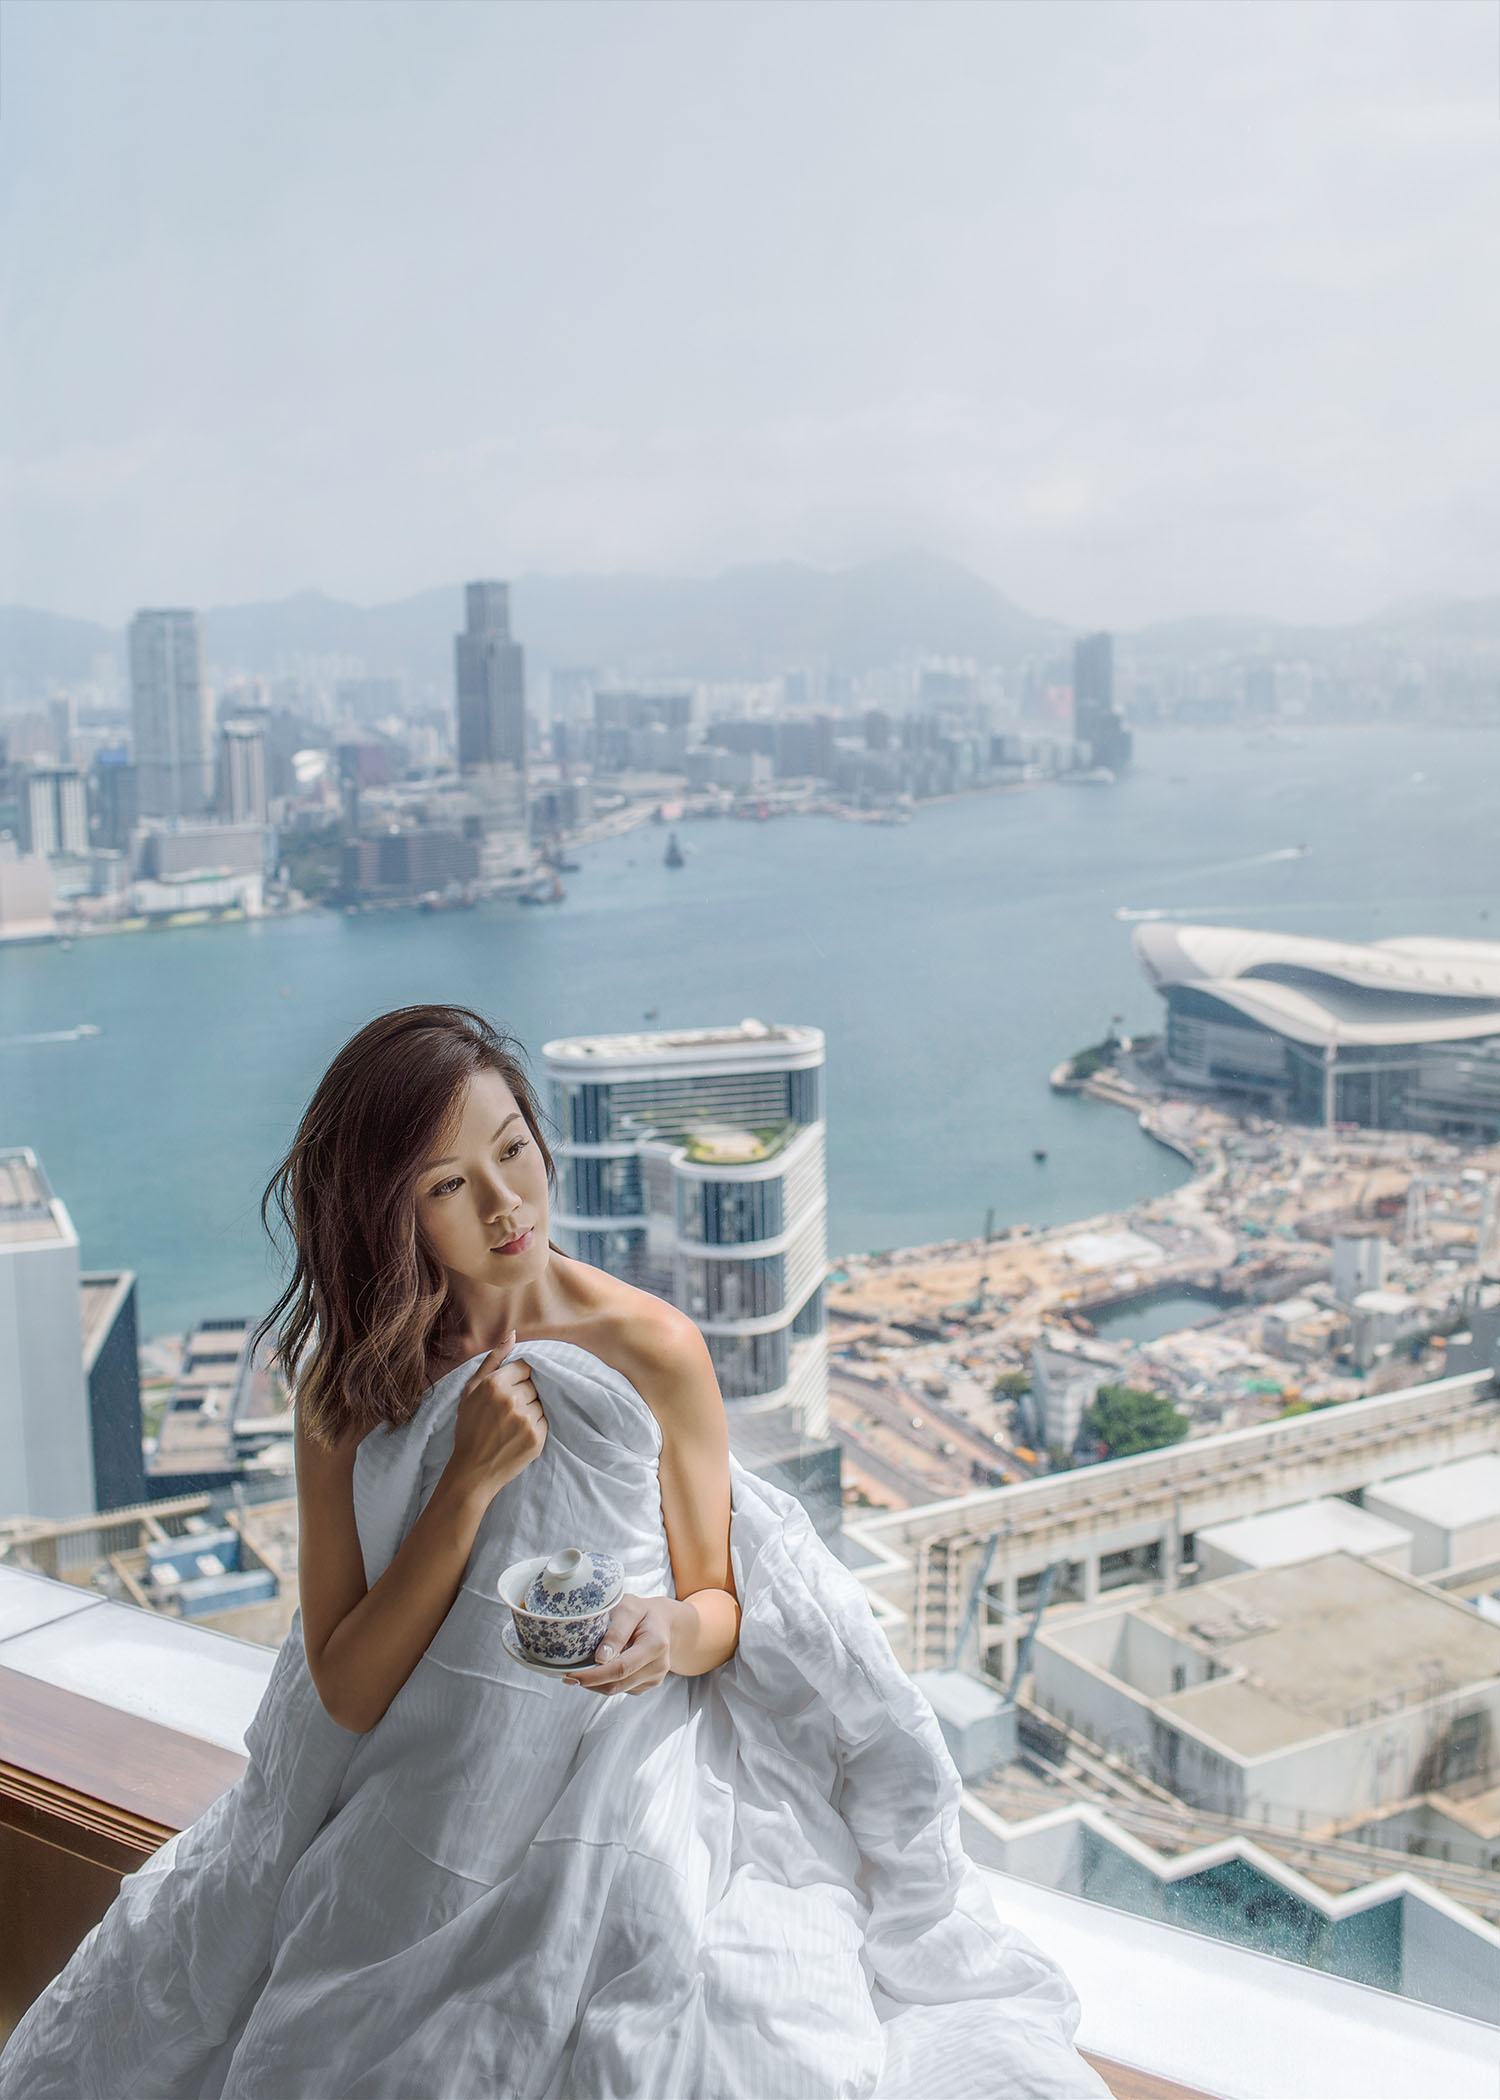 Fashion and travel blogger influencer Jenny Tsang of Tsangtastic traveling in Hong Kong, at the Island Shangri-La Hotel.